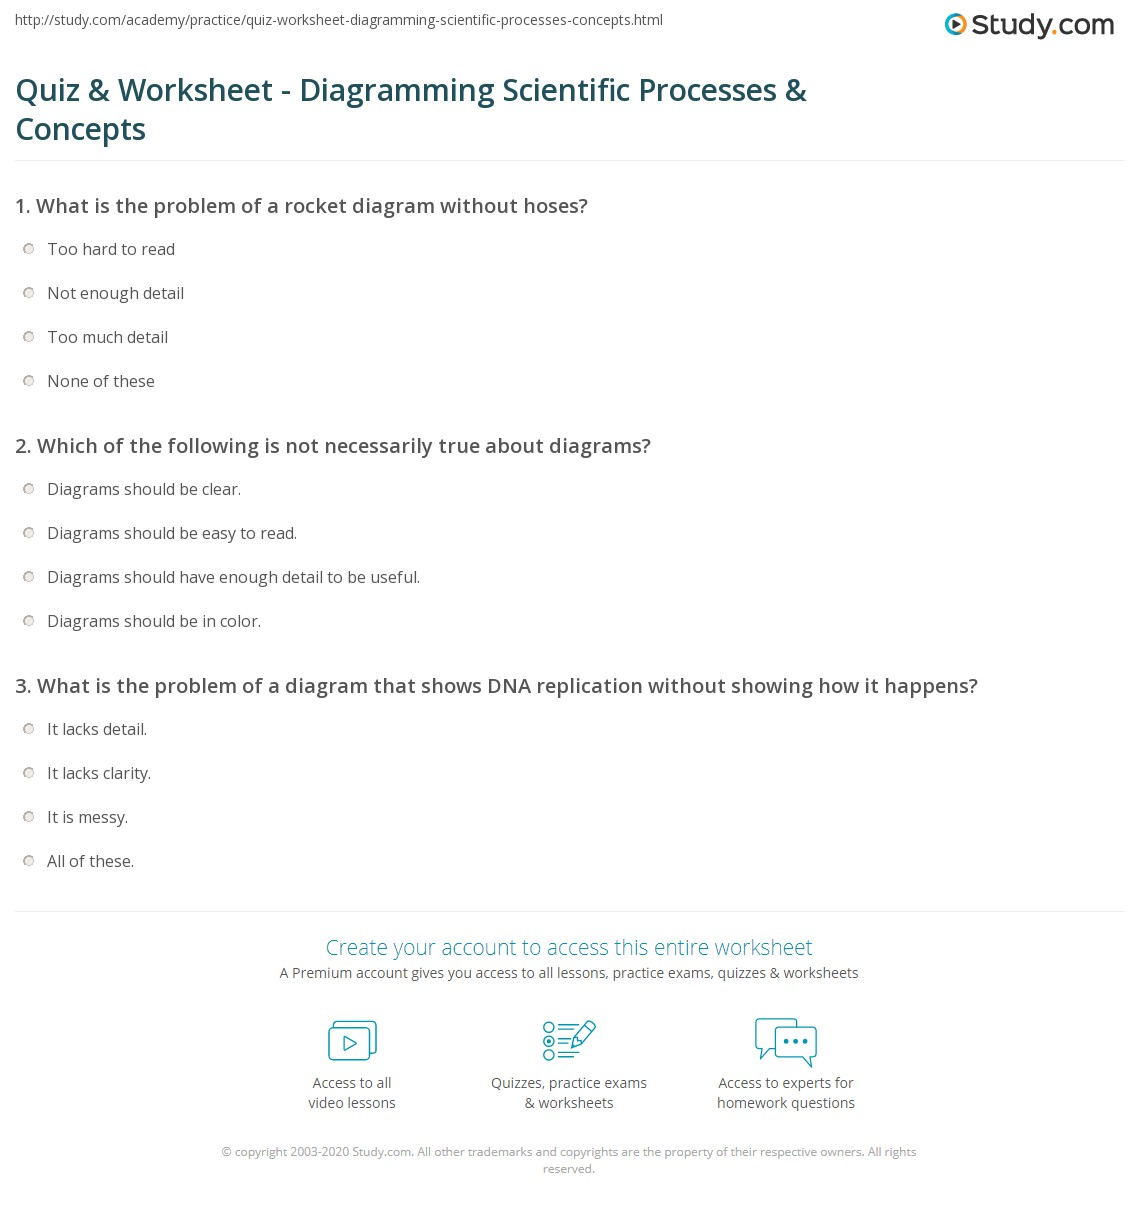 print how to draw appropriate diagrams of scientific processes and concepts  worksheet